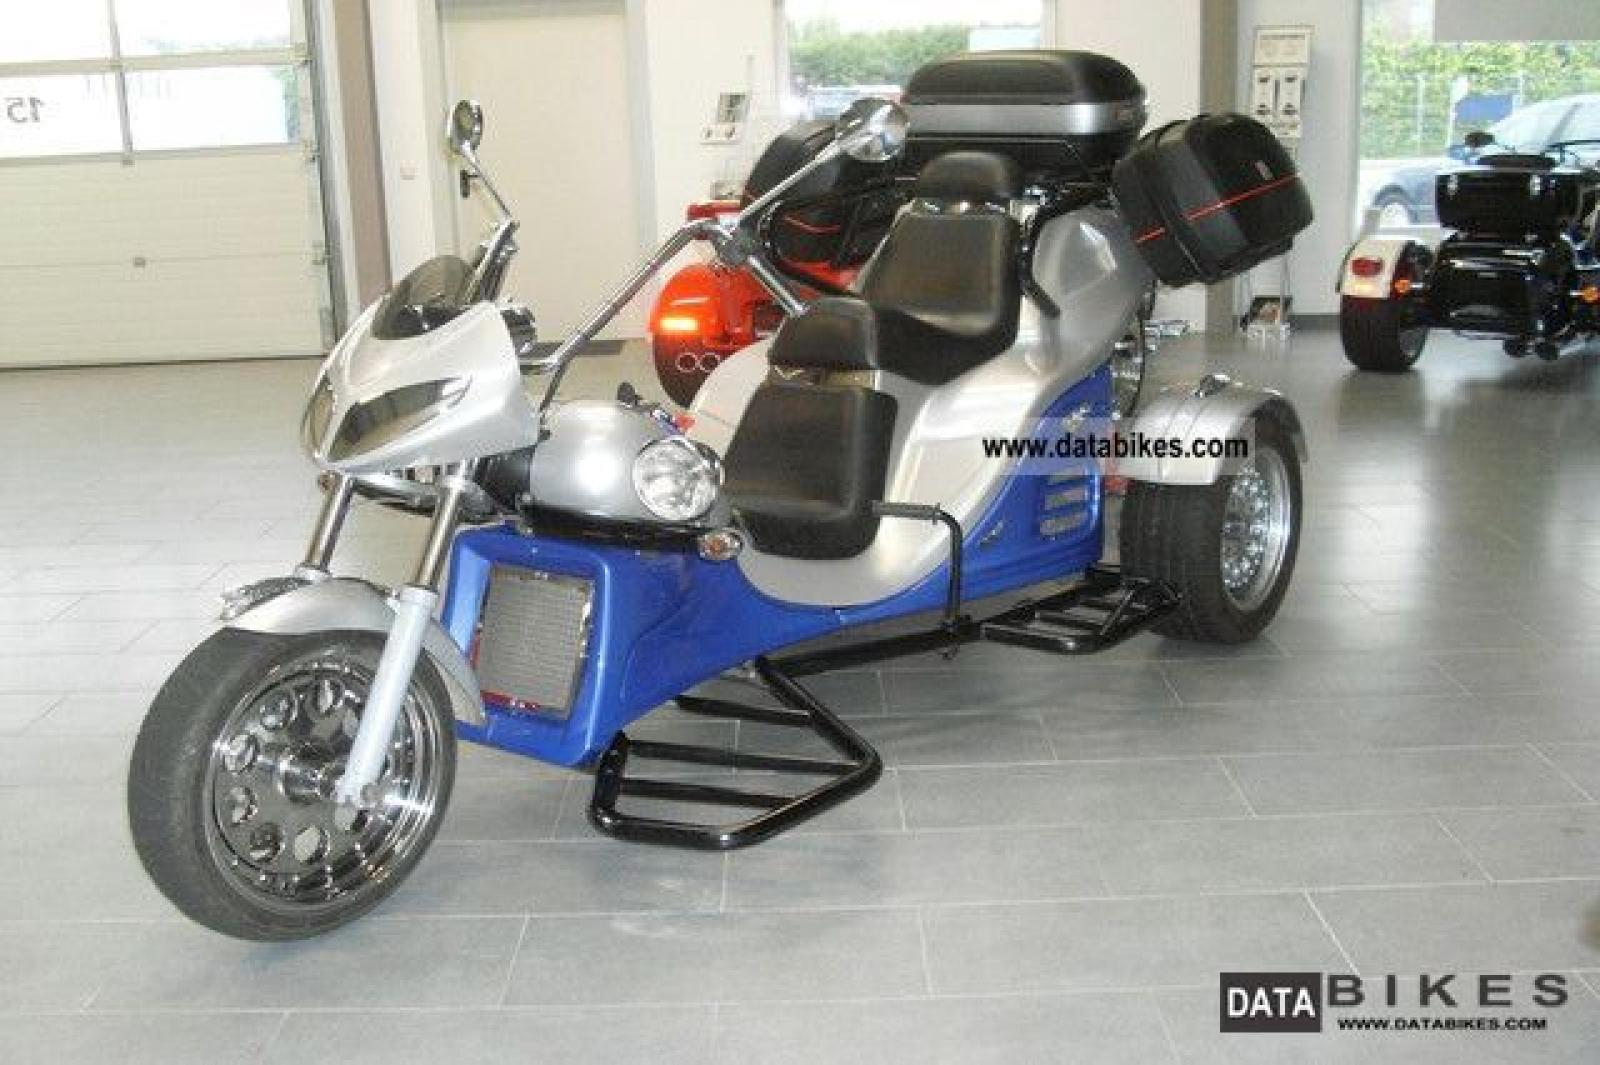 Motorcycle trikes with automatic transmission